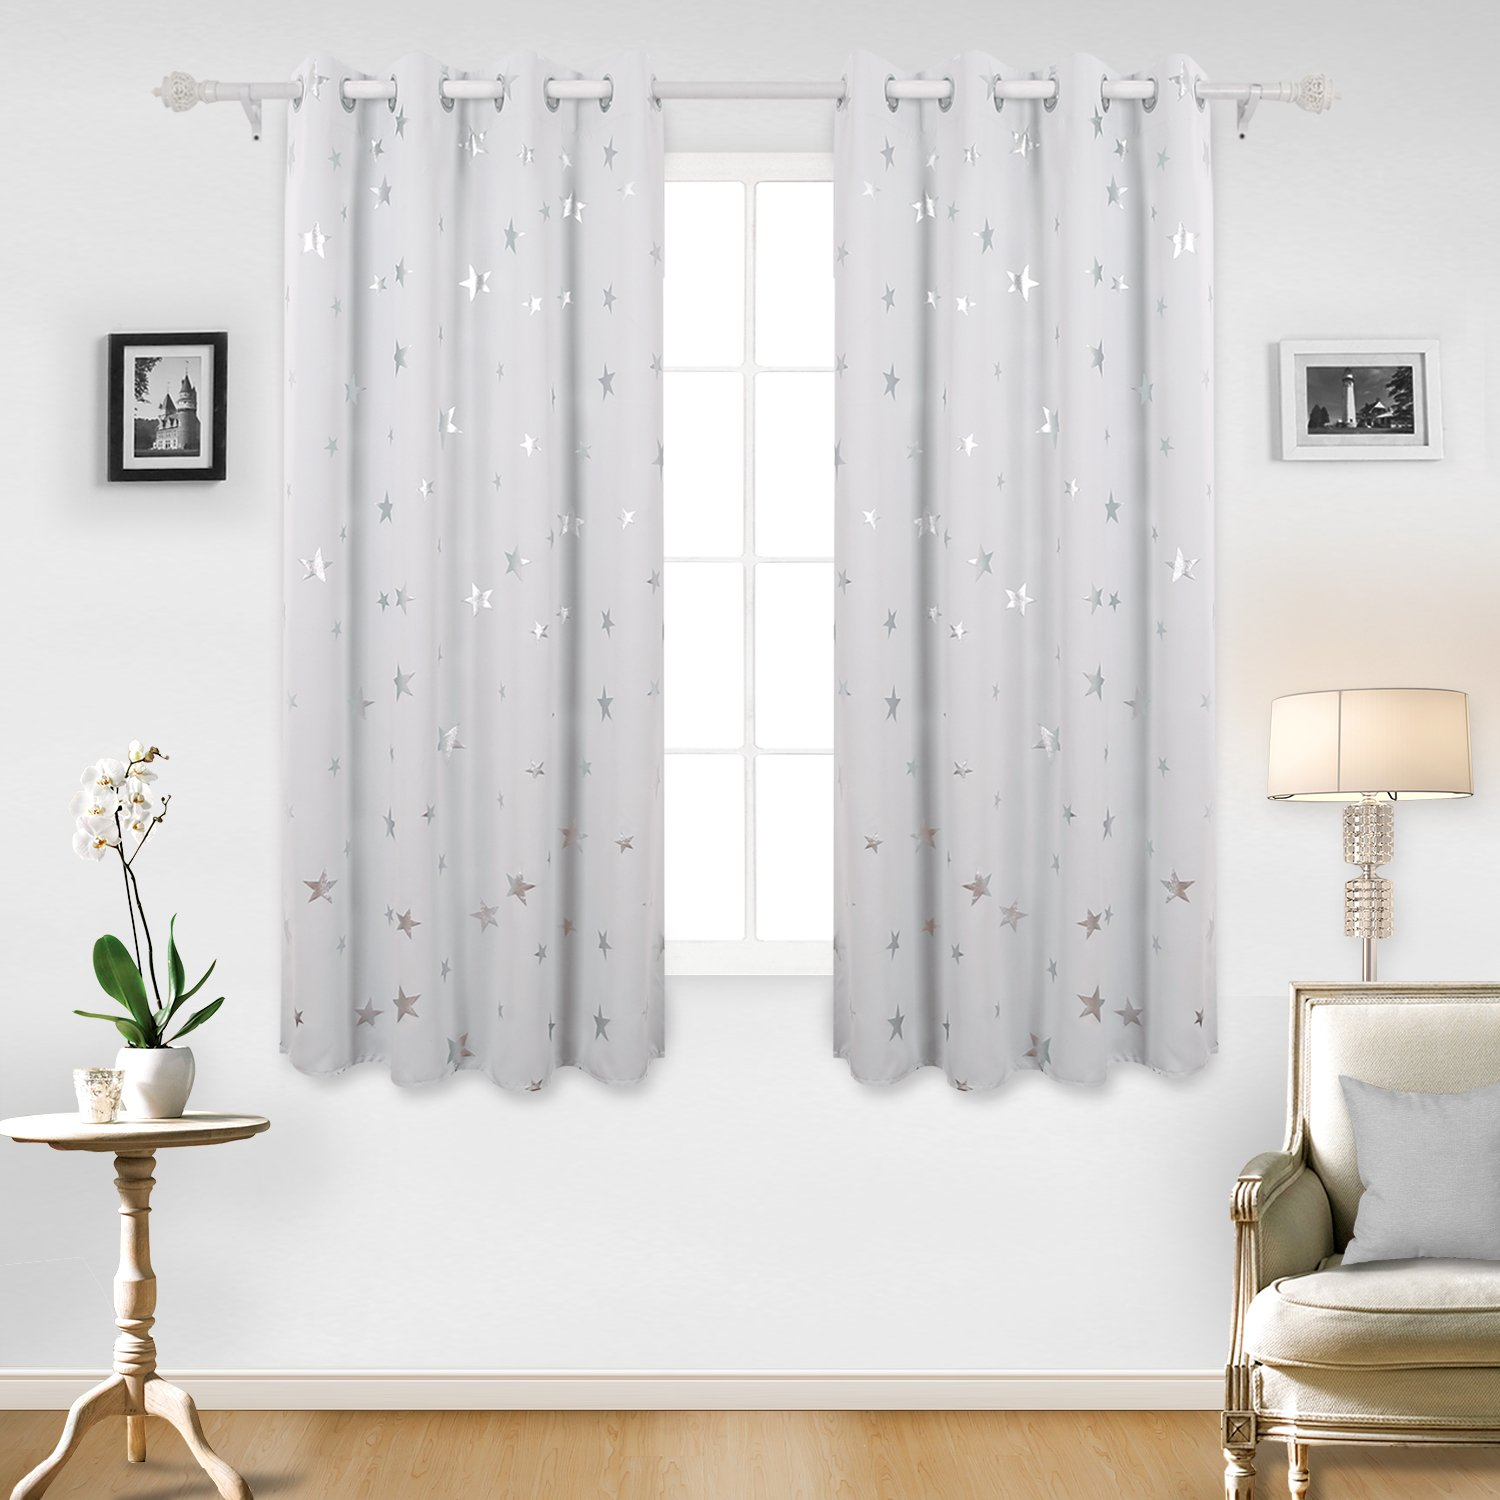 Blackout kids stars curtains bedroom thermal eyelet ring - Childrens bedroom blackout curtains ...